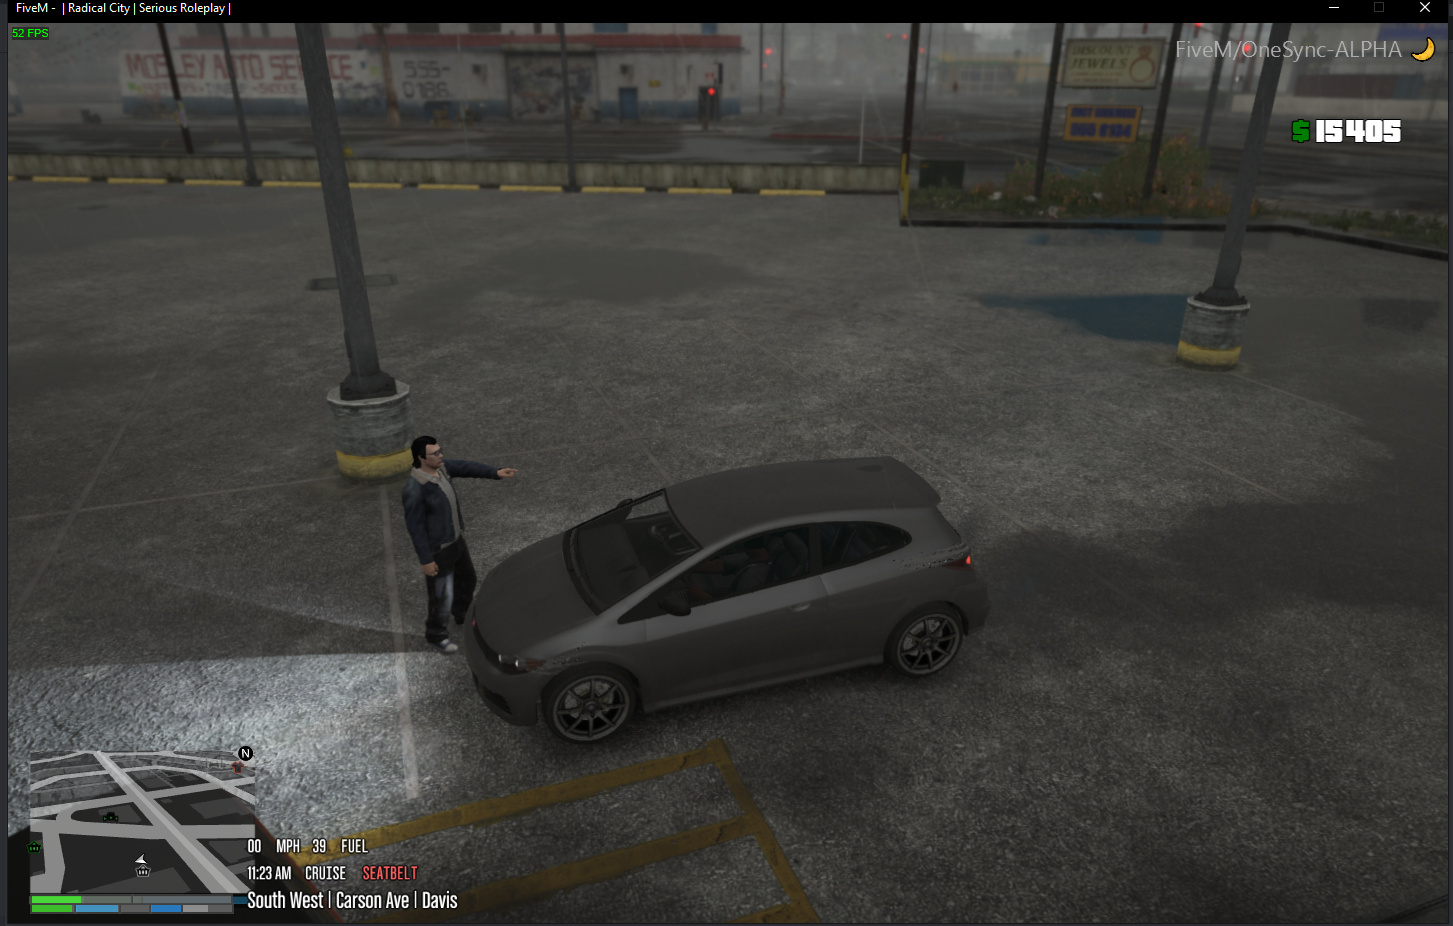 HELP] can't see some vehicle - Discussion - FiveM